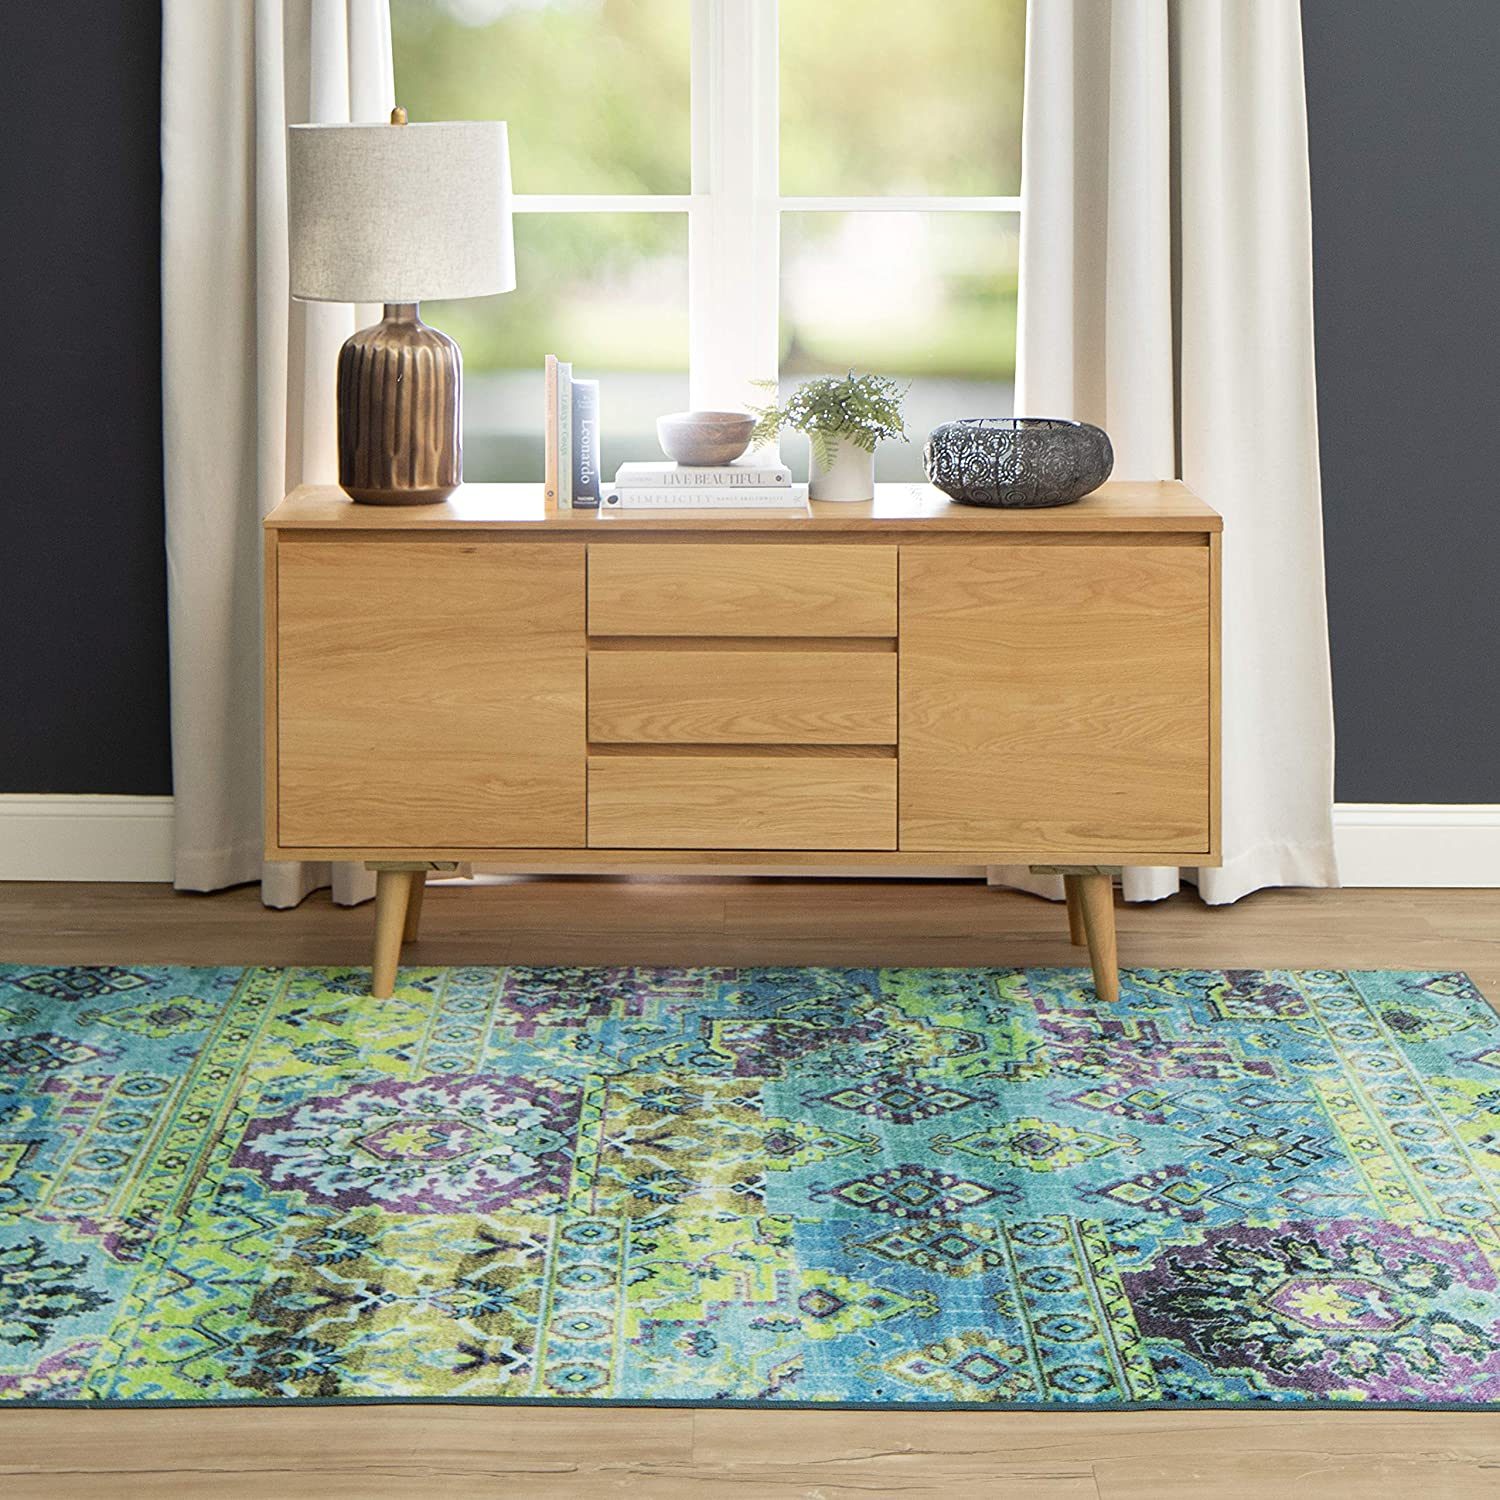 Mohawk Home Prismatic Plano Lime Green Distressed Boho Patchwork Precision Printed Area Rug, 5'x8', Blue and Green